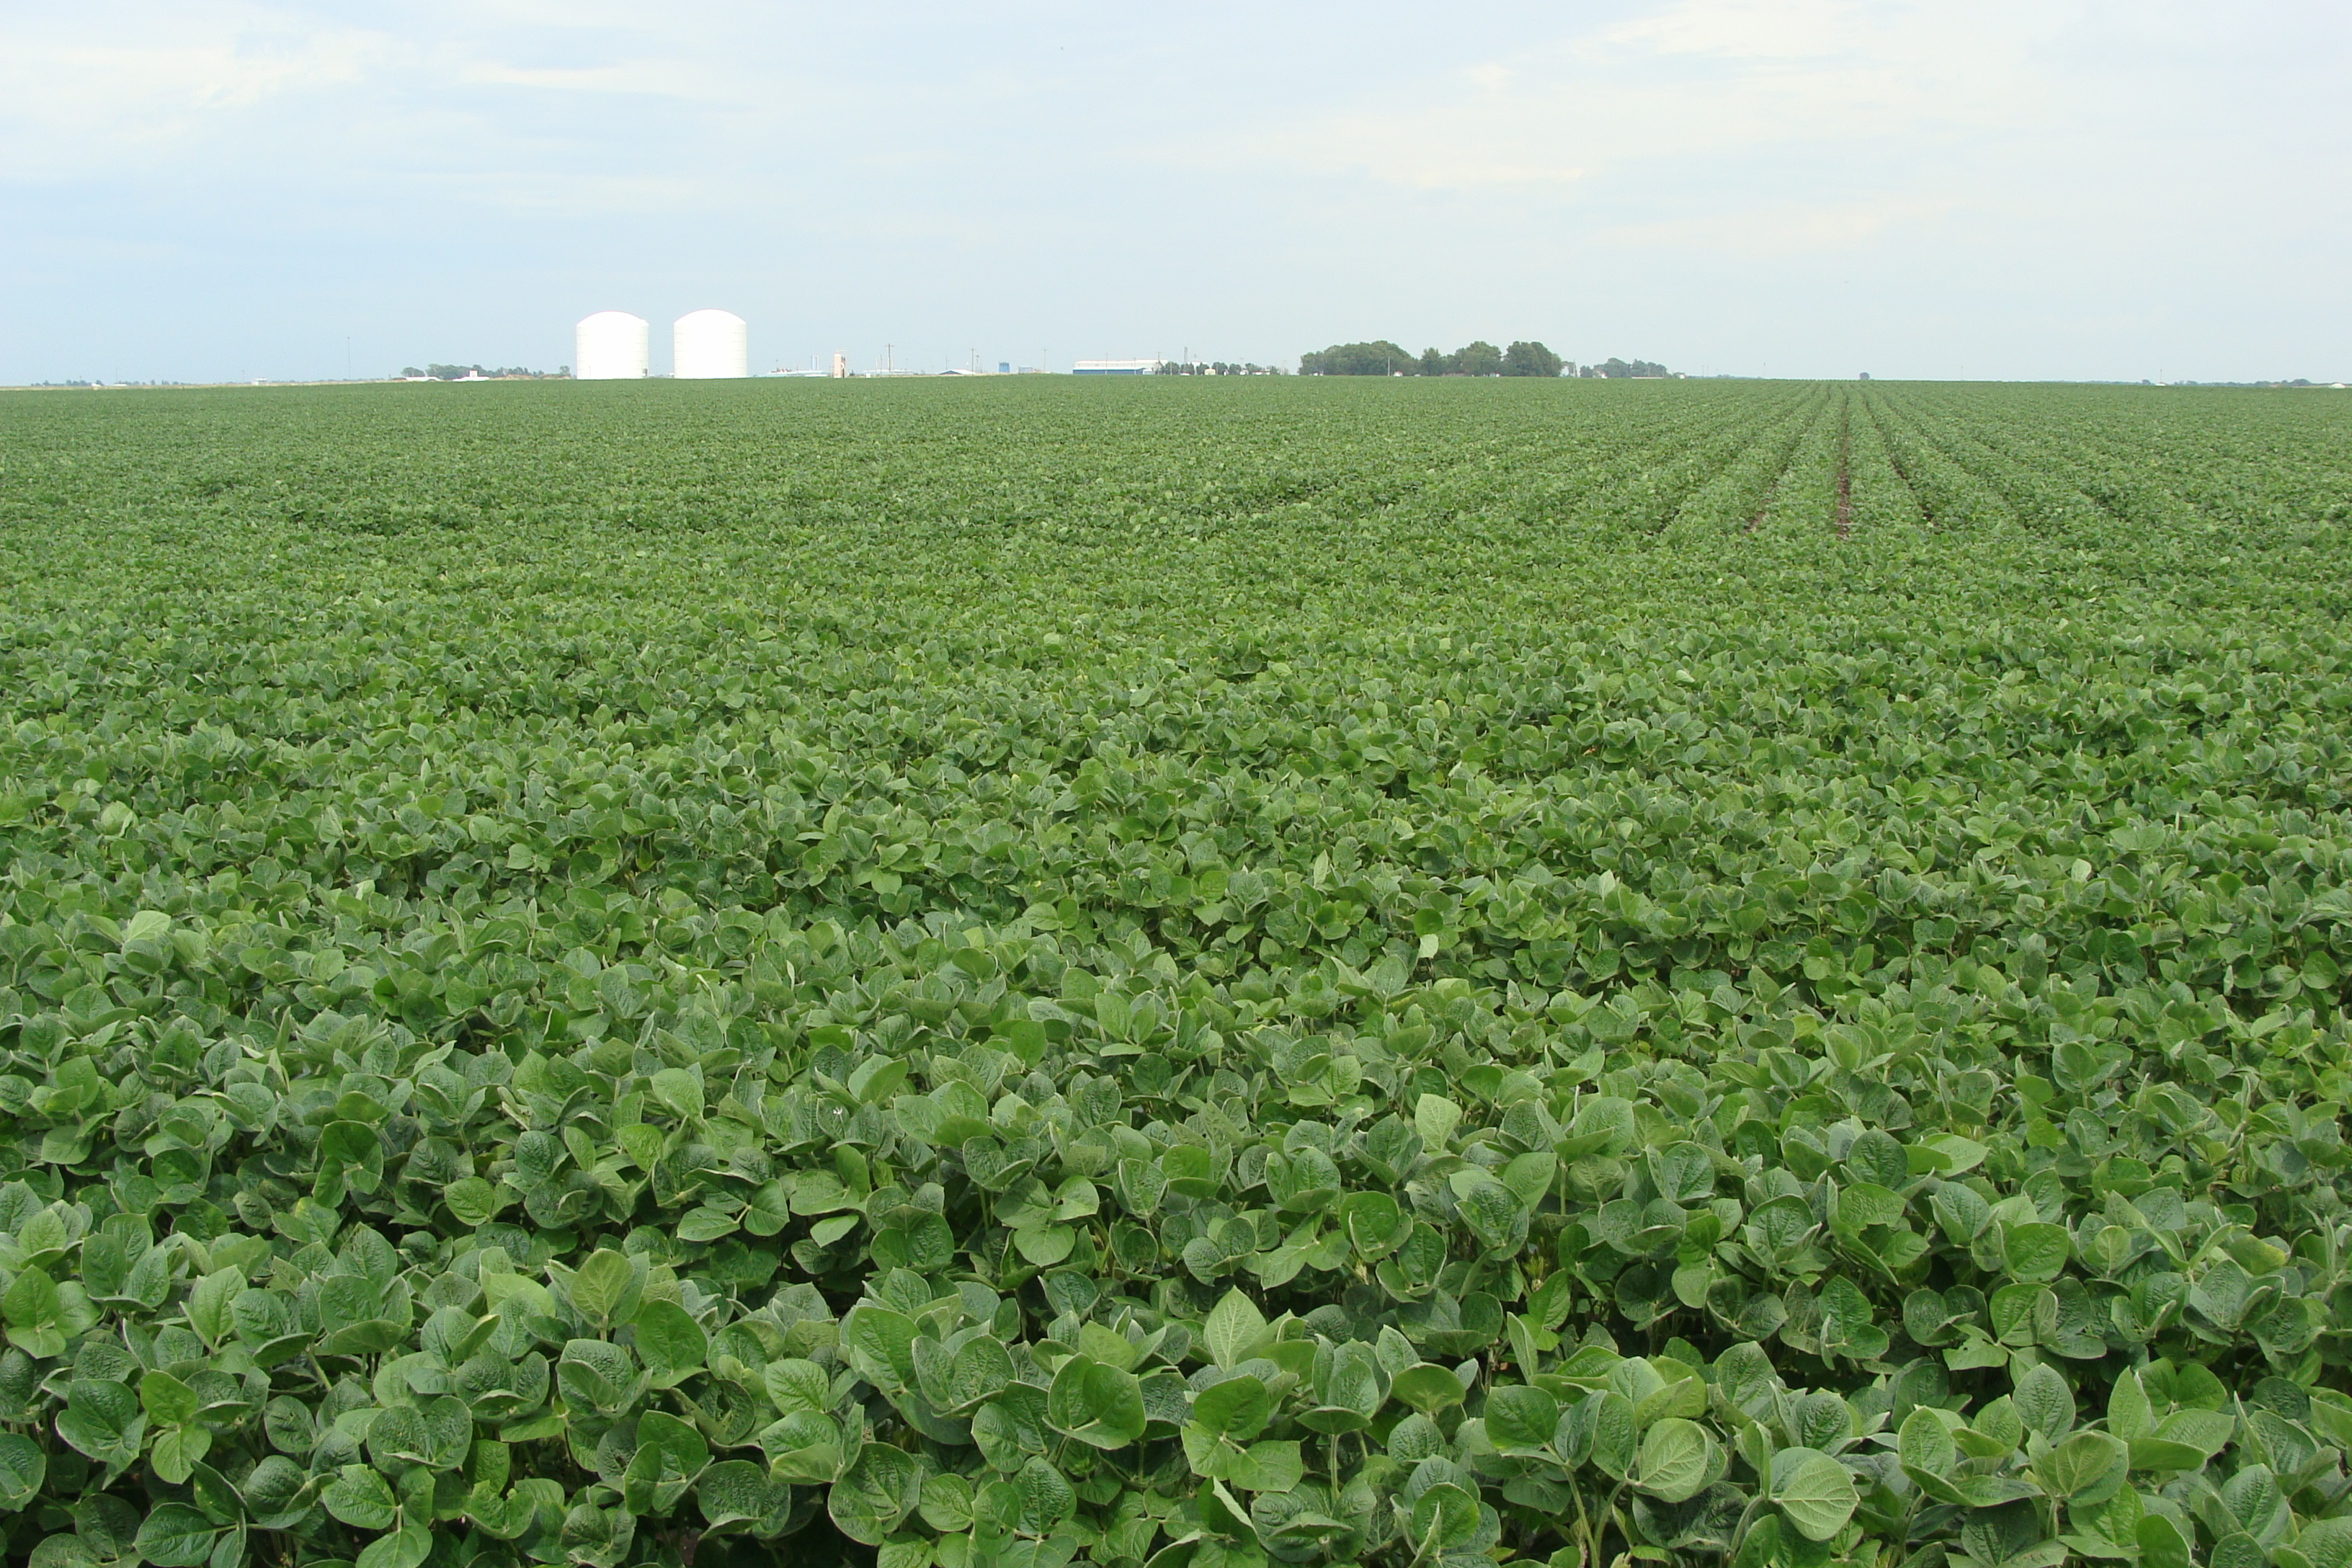 Webster Picture of Soybean Field